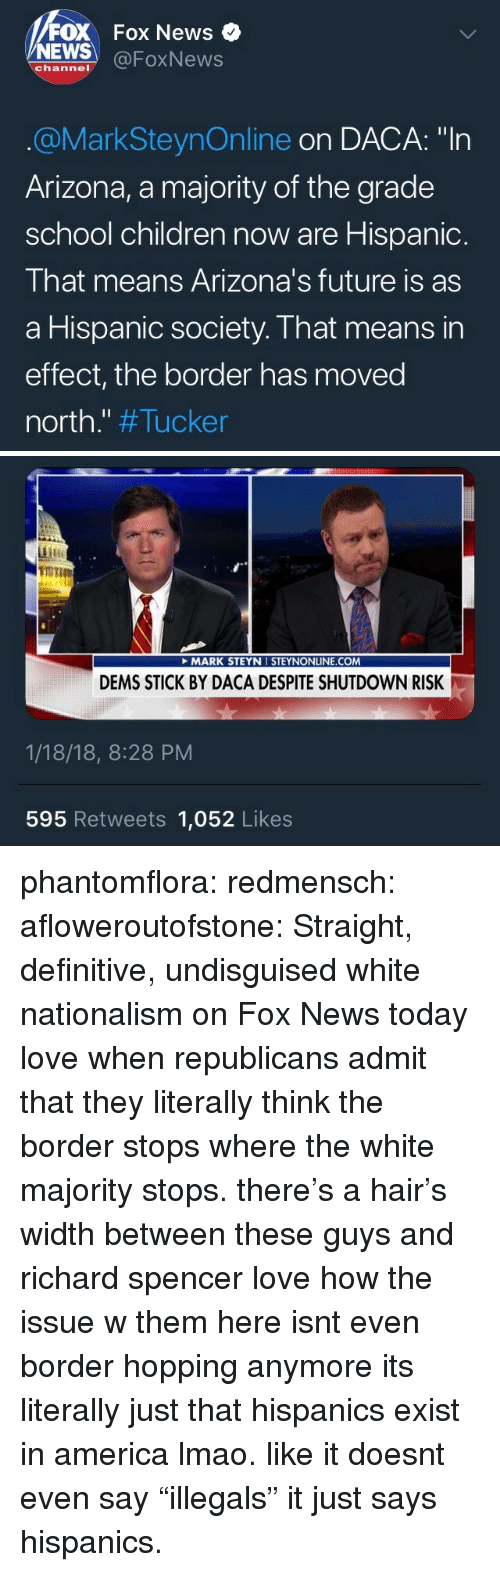 """Nationalism: FOX Fox News  NEWS @FoxNews  channel  @MarkSteynOnline on DACA: """"In  Arizona, a majority of the grade  school children now are Hispanic.  That means Arizona's future is as  a Hispanic society. That means in  effect, the border has moved  north."""" #Tucker   TOT  it  MARK STEYN I STEYNONLINE.COM  DEMS STICK BY DACA DESPITE SHUTDOWN RISK  1/18/18, 8:28 PM  595 Retweets 1,052 Likes phantomflora: redmensch:  afloweroutofstone: Straight, definitive, undisguised white nationalism on Fox News today love when republicans admit that they literally think the border stops where the white majority stops. there's a hair's width between these guys and richard spencer   love how the issue w them here isnt even border hopping anymore its literally just that hispanics exist in america lmao. like it doesnt even say """"illegals"""" it just says hispanics."""